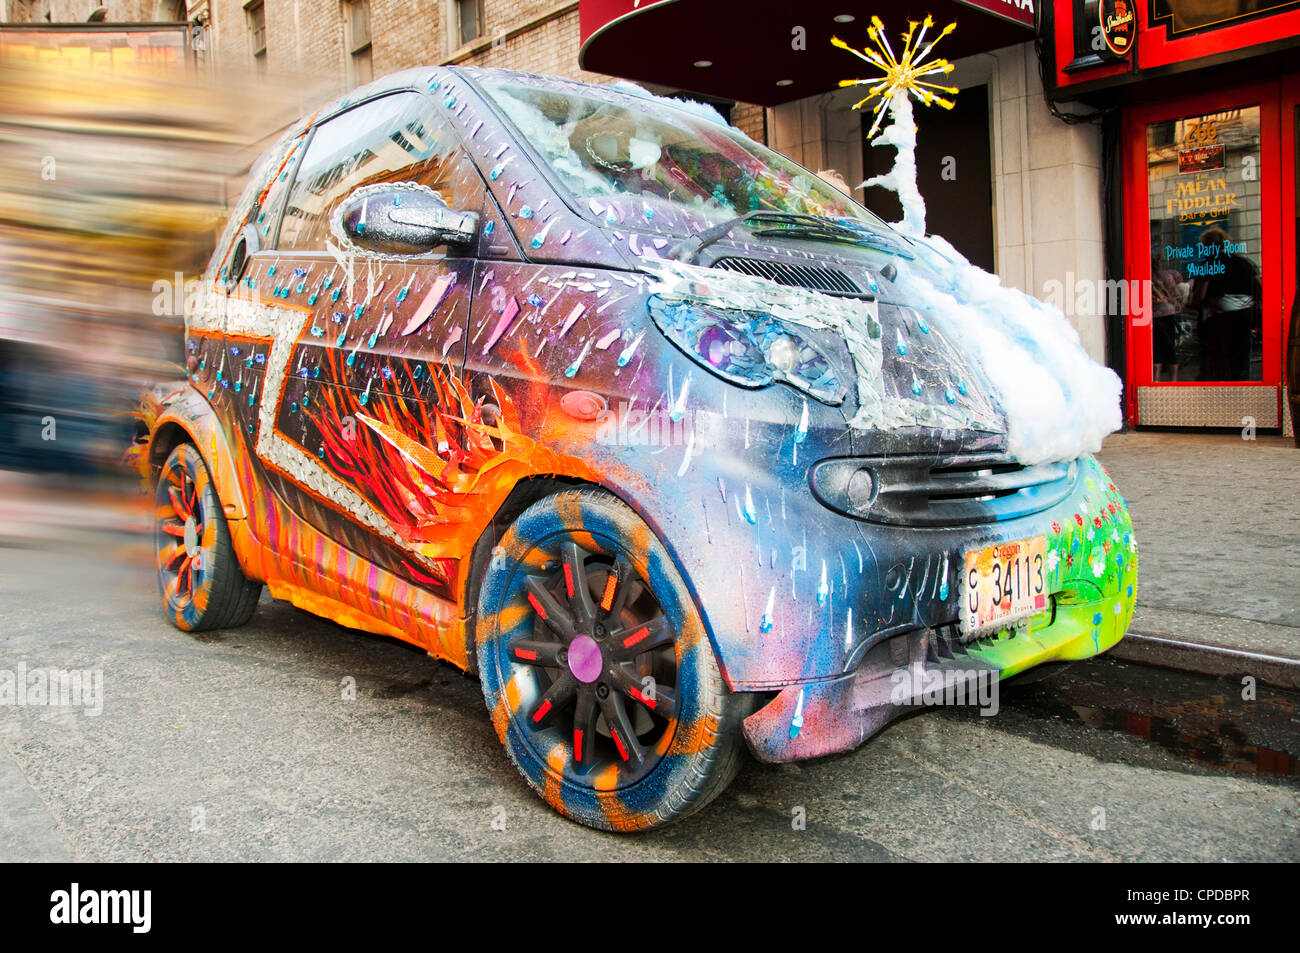 funky decorated parked car - Stock Image